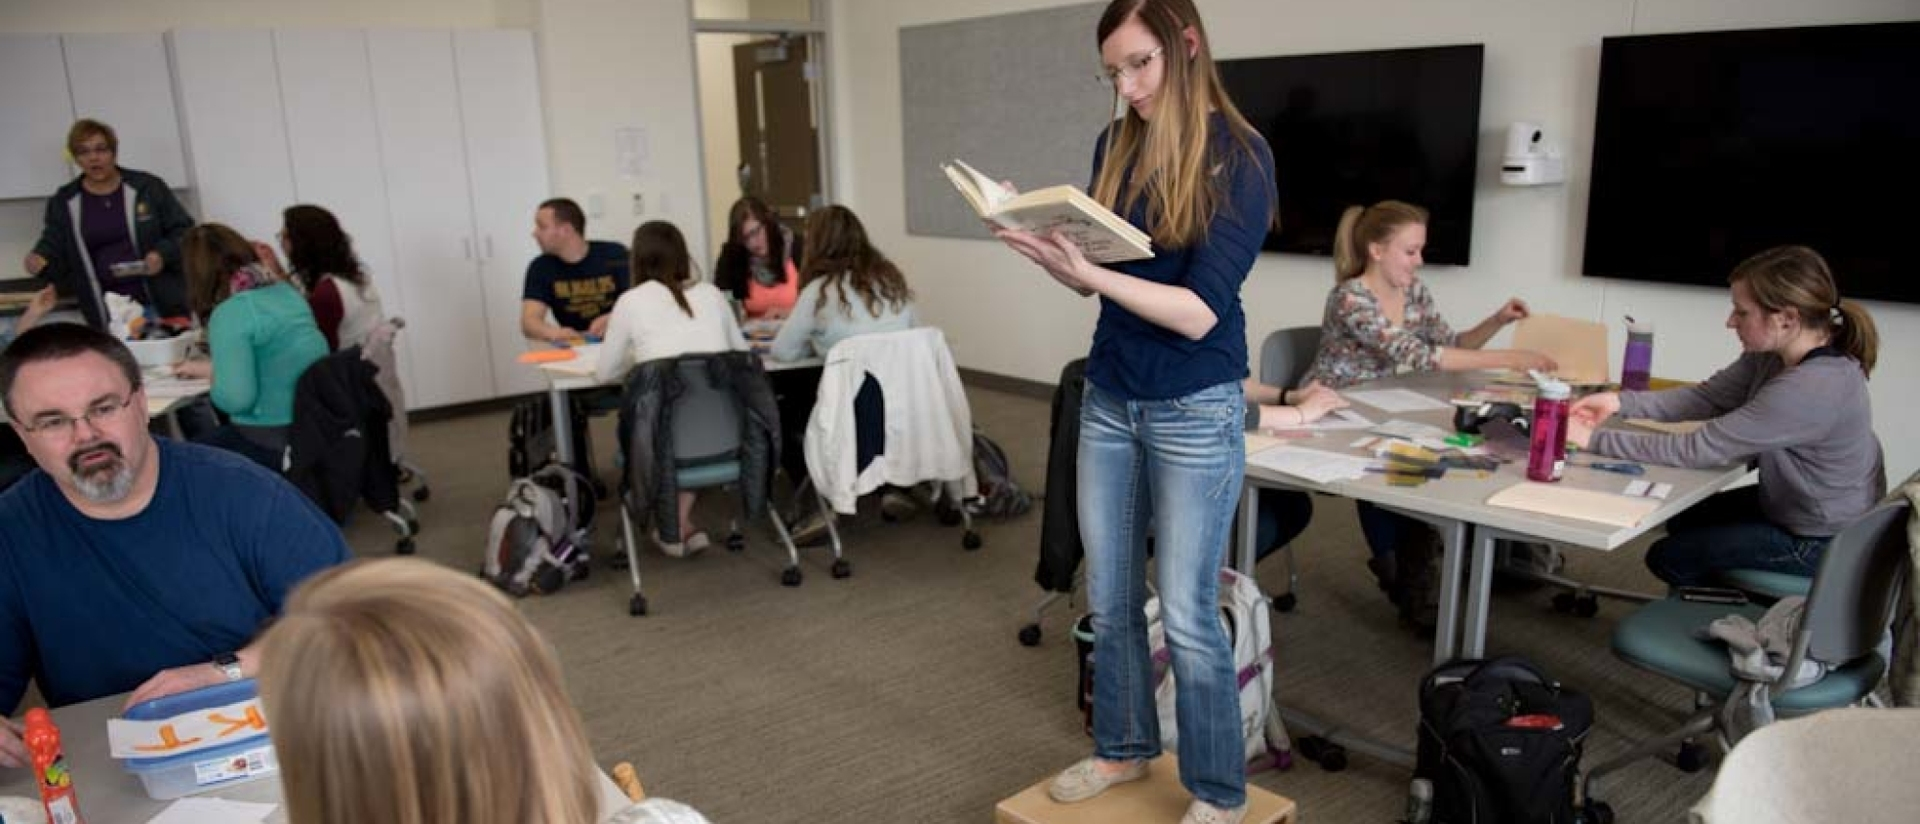 Blugolds in adaptive learning education class